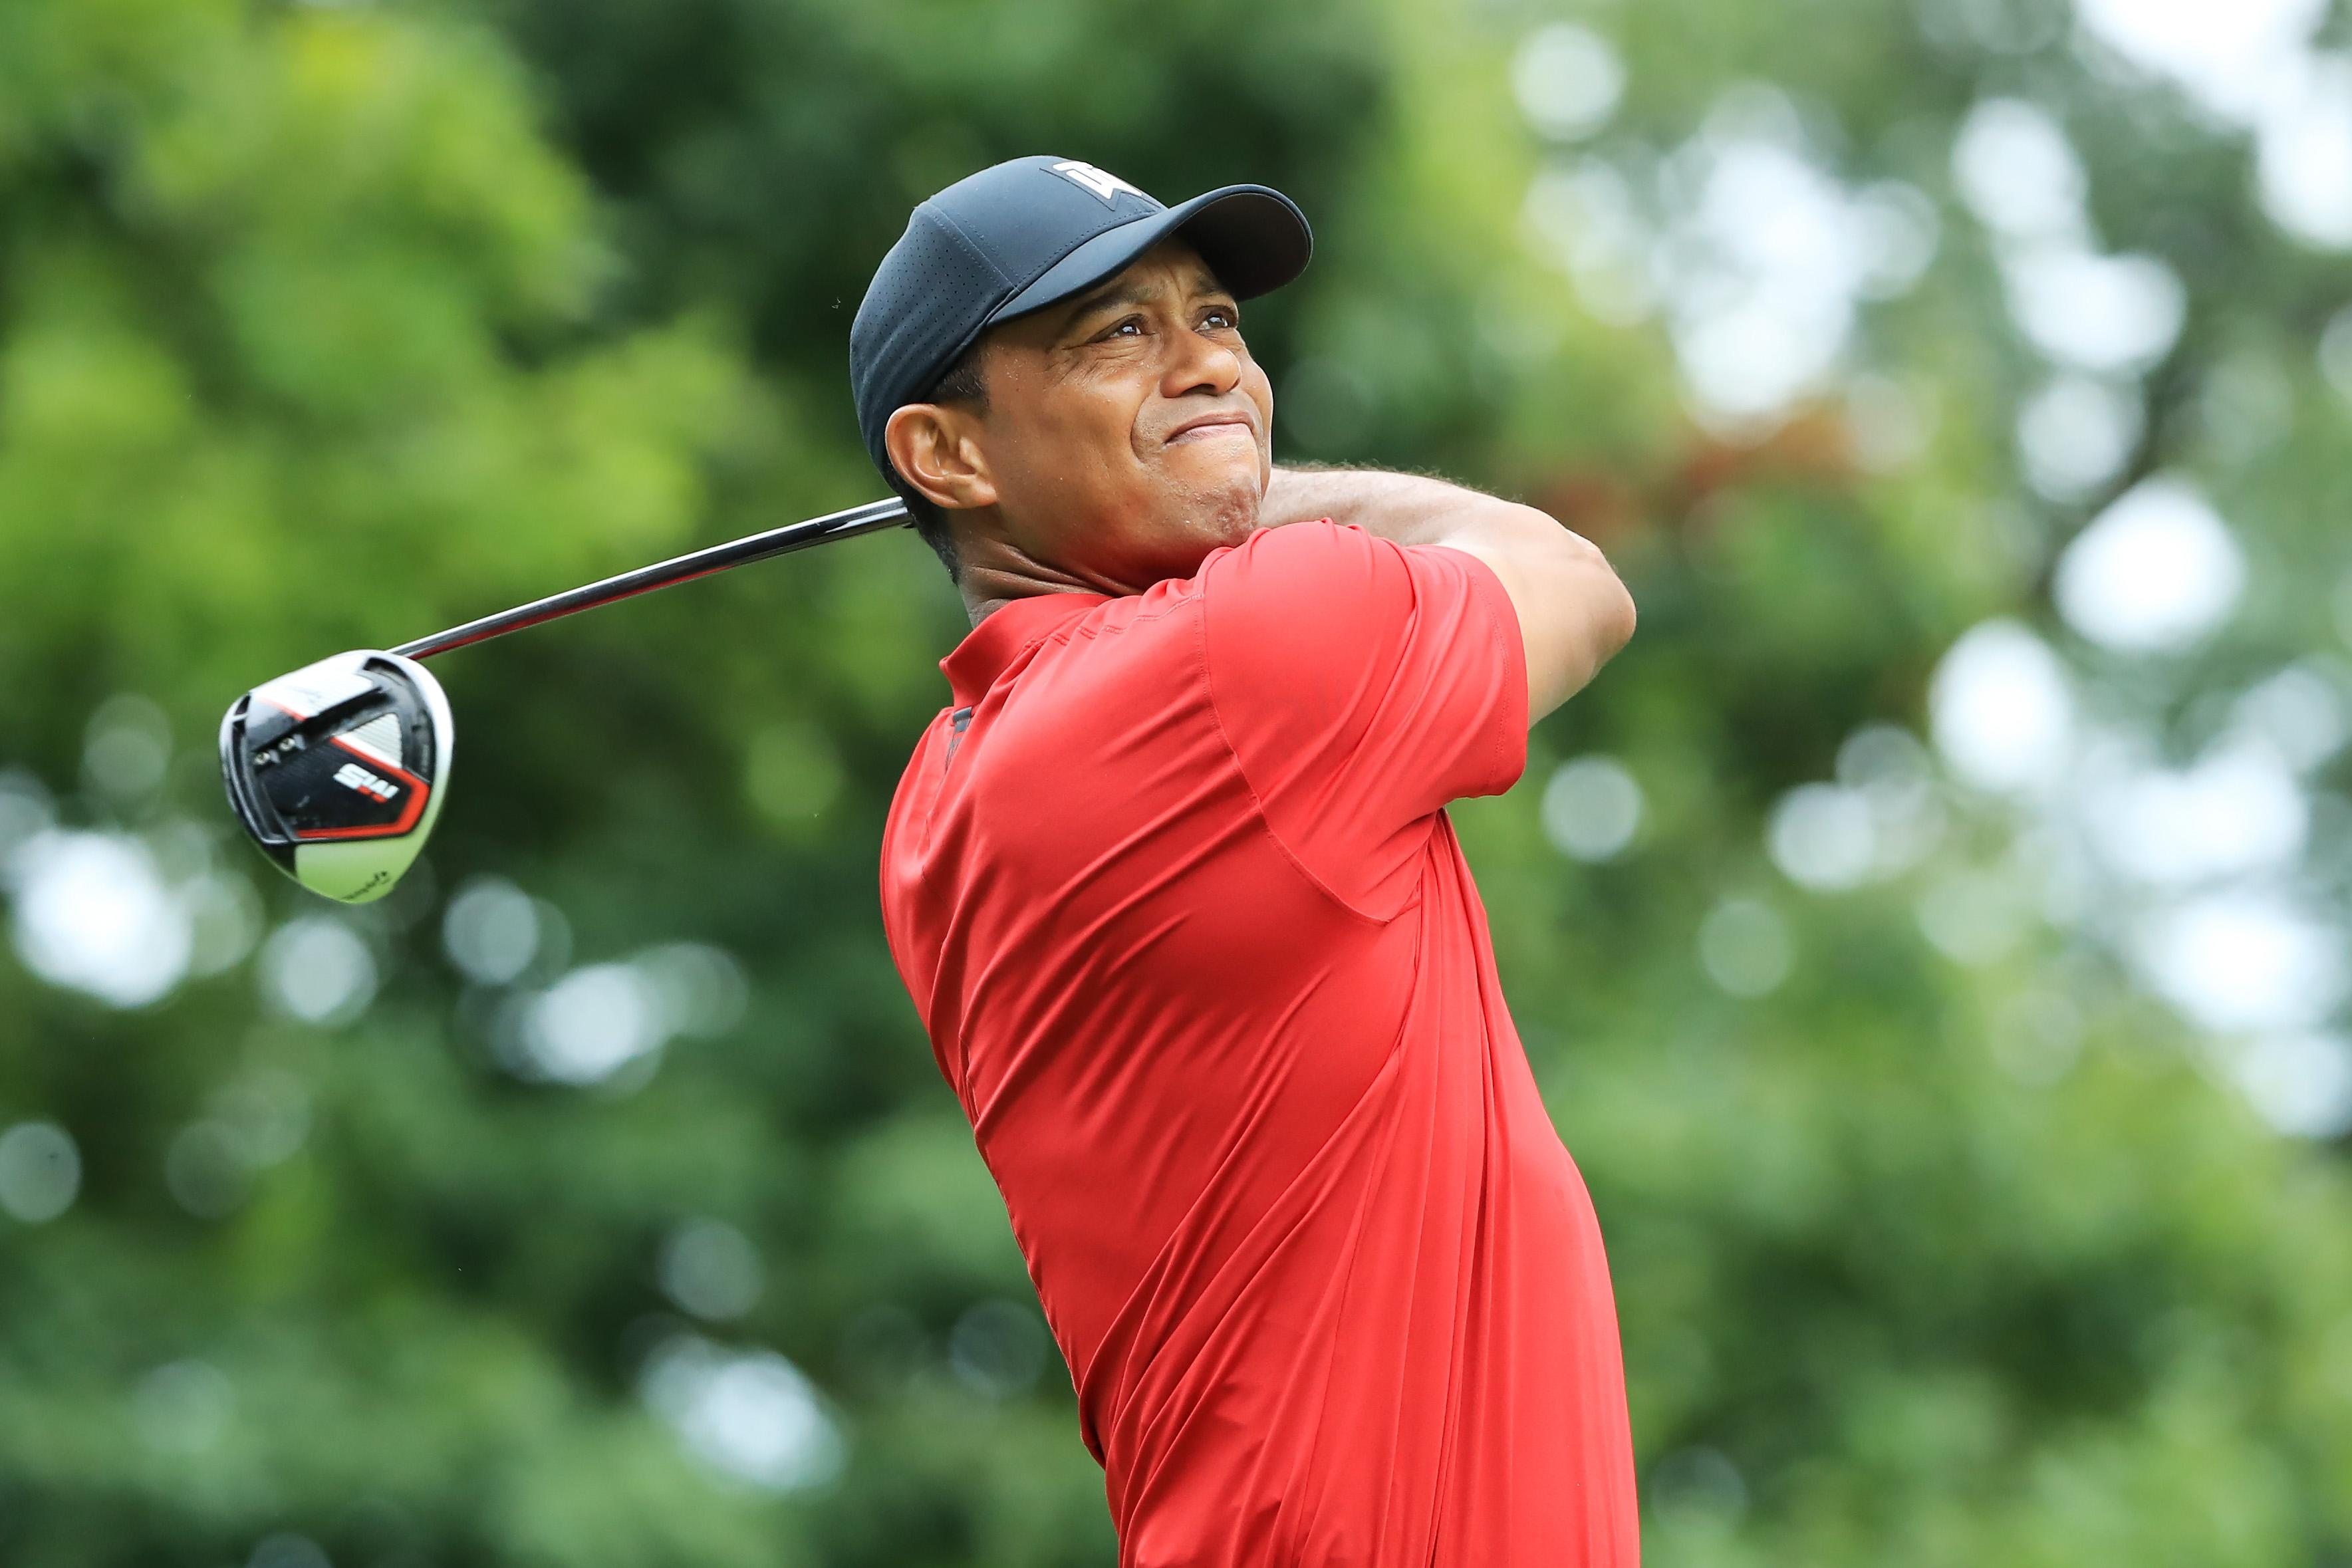 Tiger Woods to release memoir about storied golf career